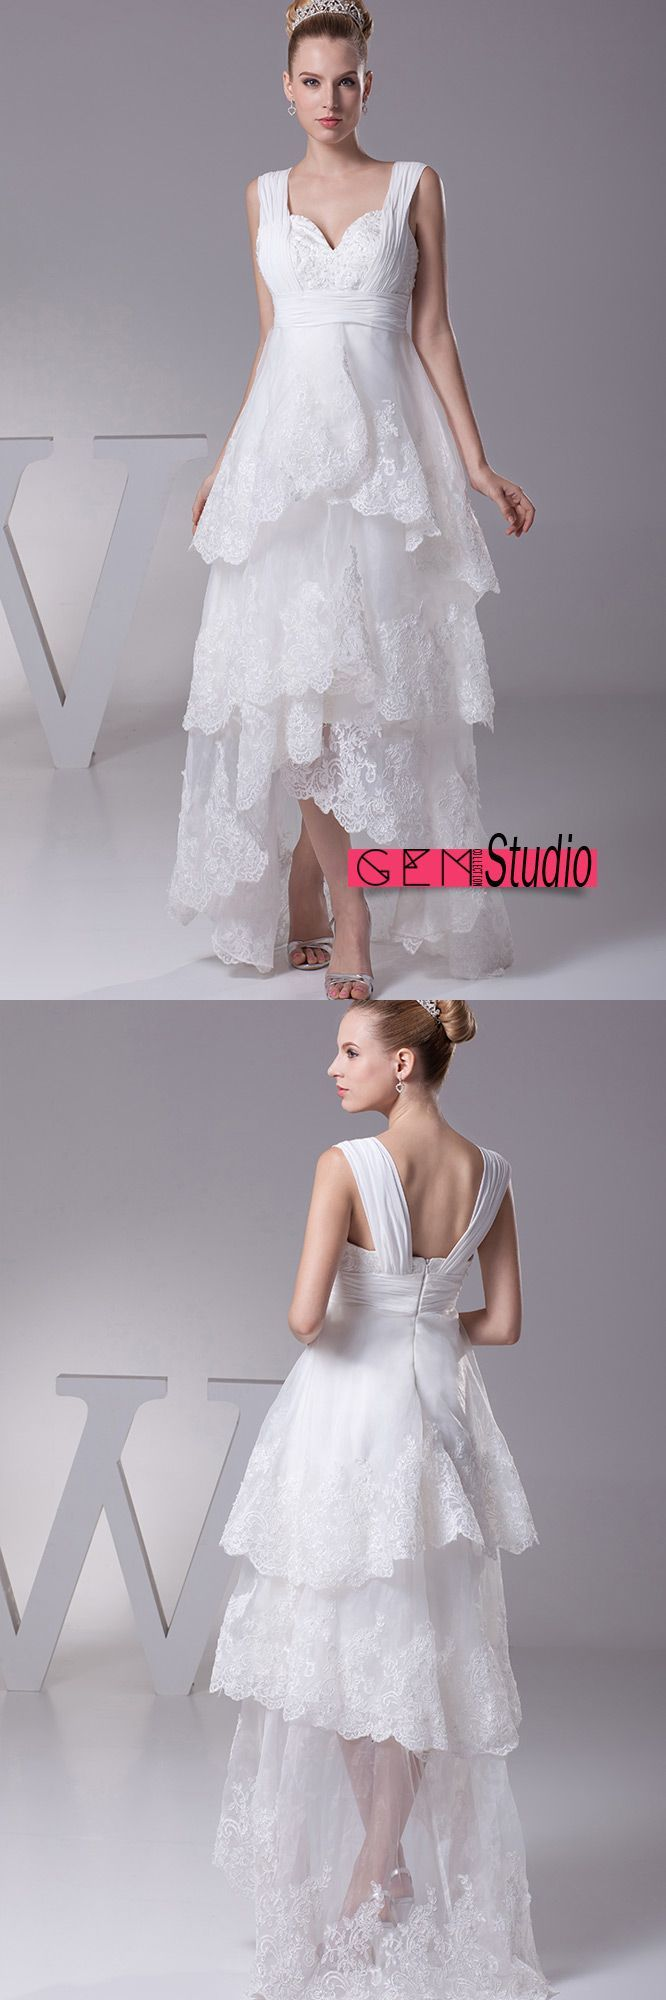 Wedding dress with short front and long back  Gorgeous Short in Front Long in Back Lace Layered Wedding Dress with